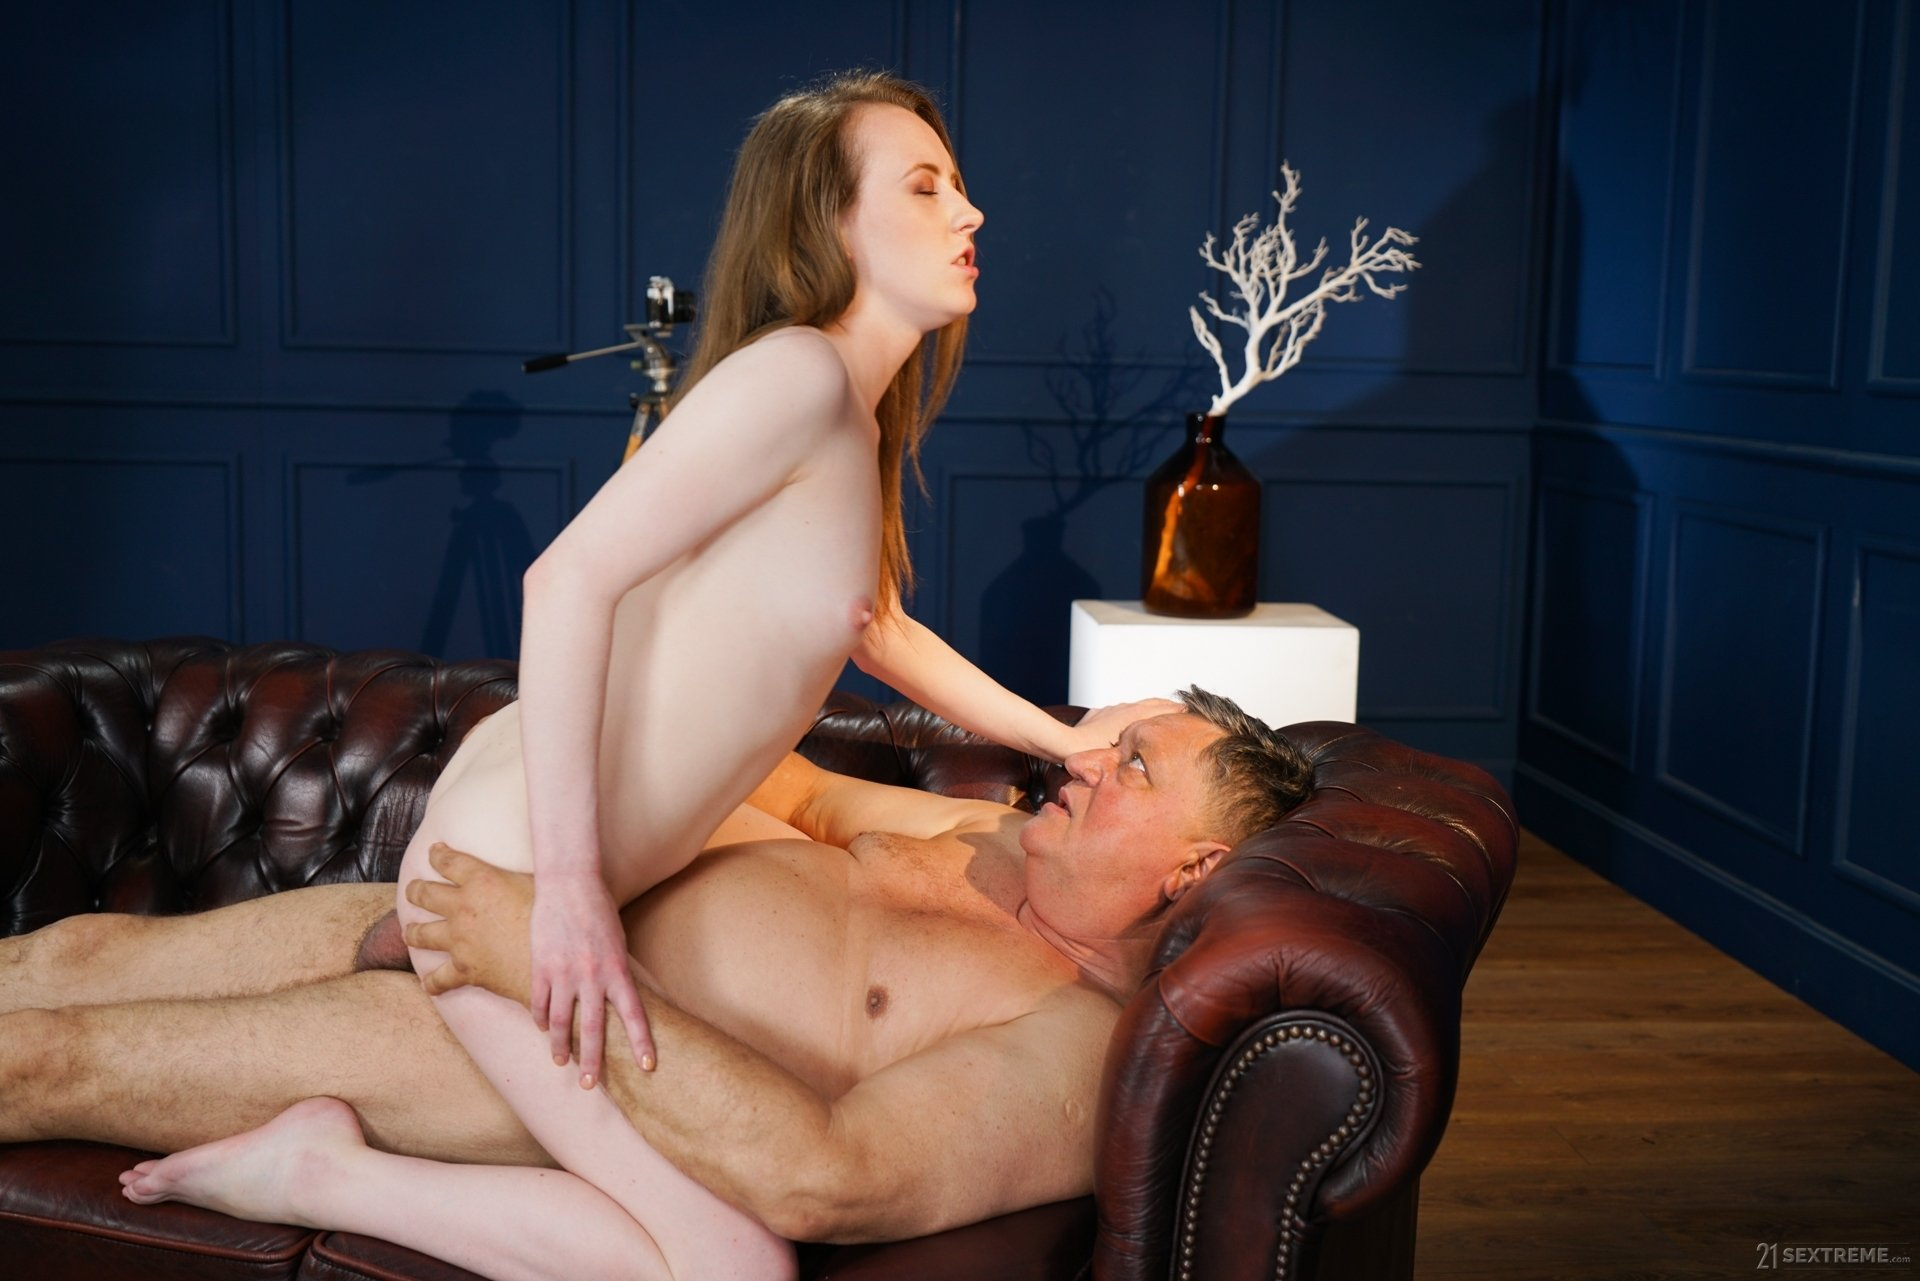 New Masseuse Emma Fantasy Gives An Older Man The Best Treatment